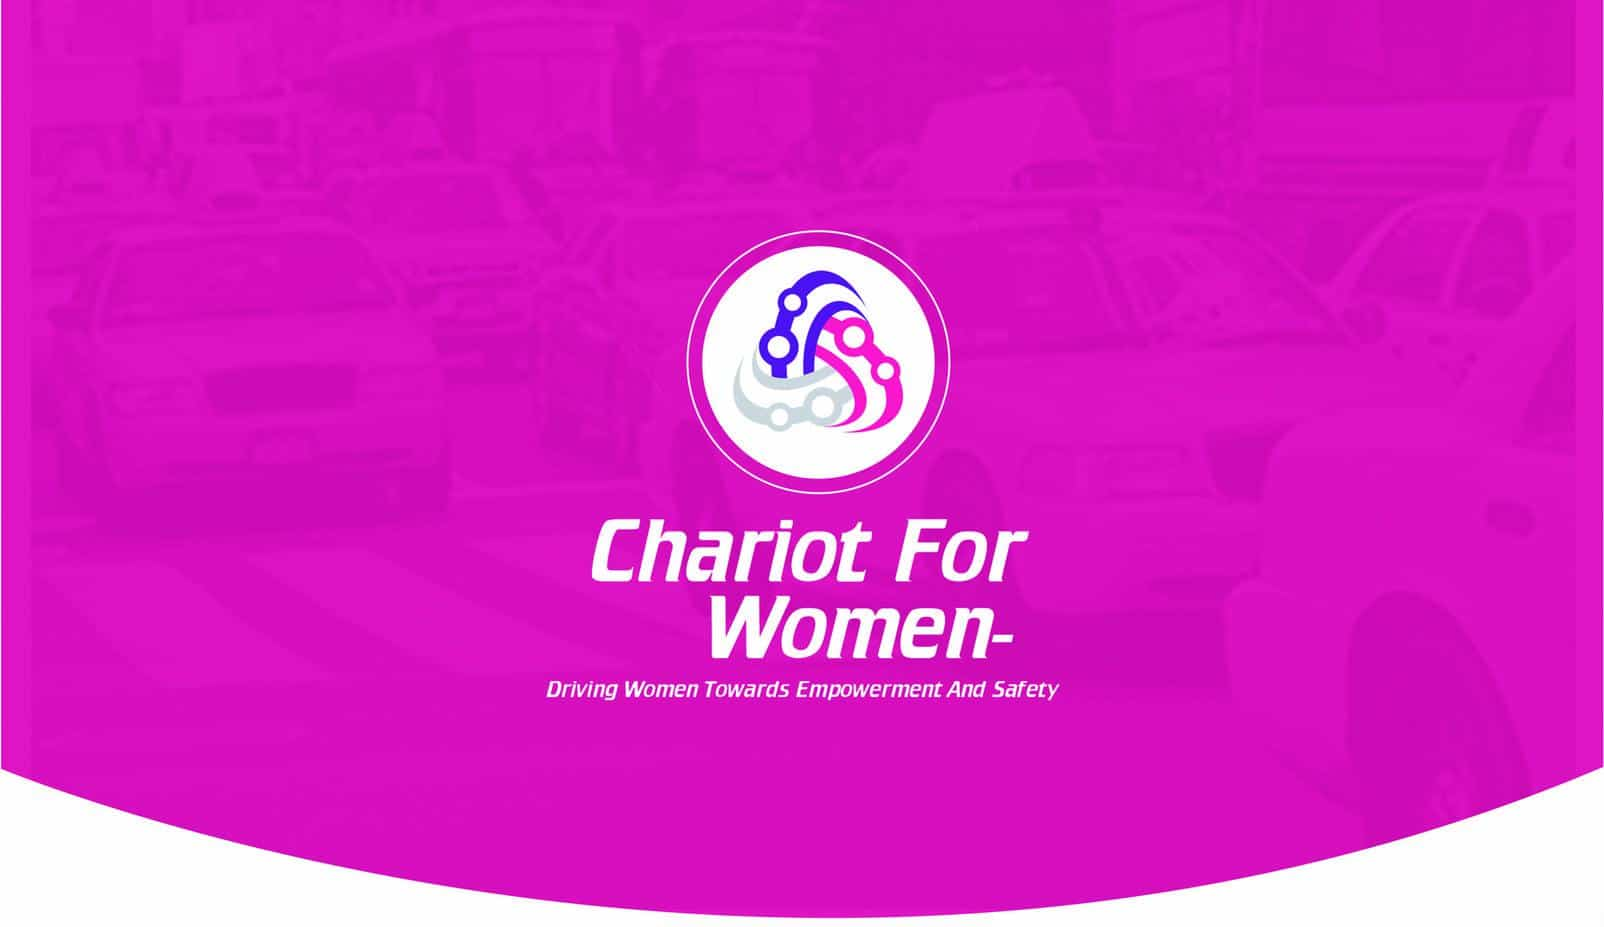 Credit: Chariot For Women